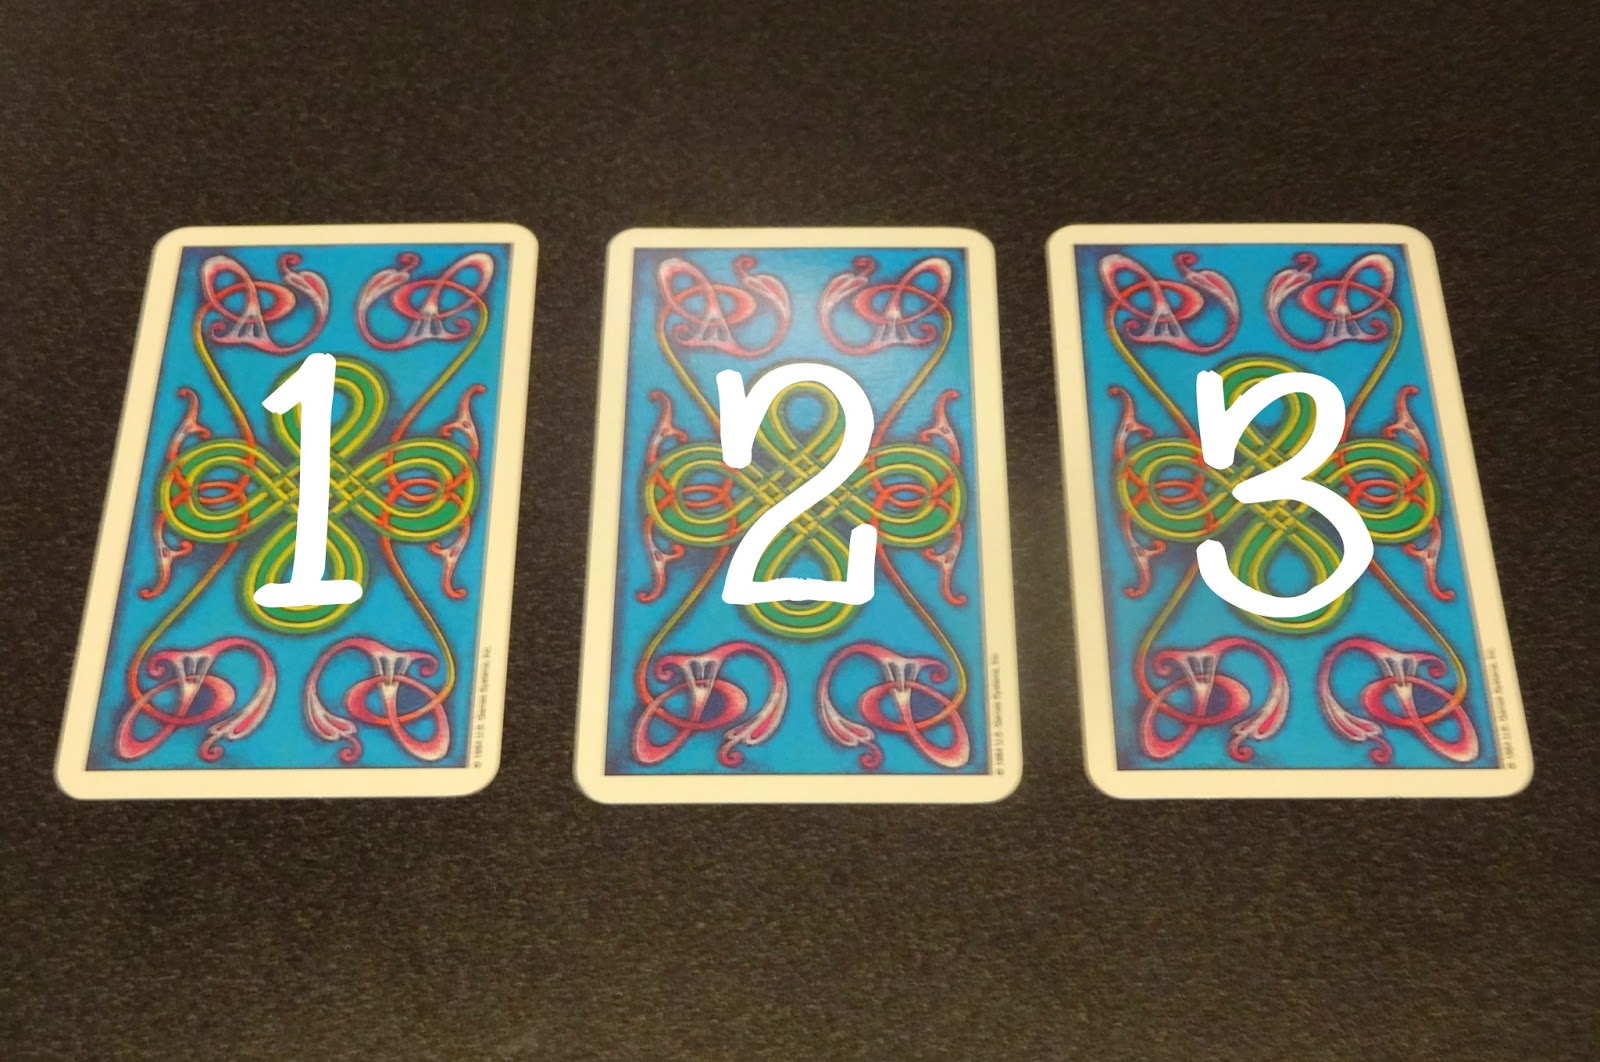 3 cards in a horizontal row